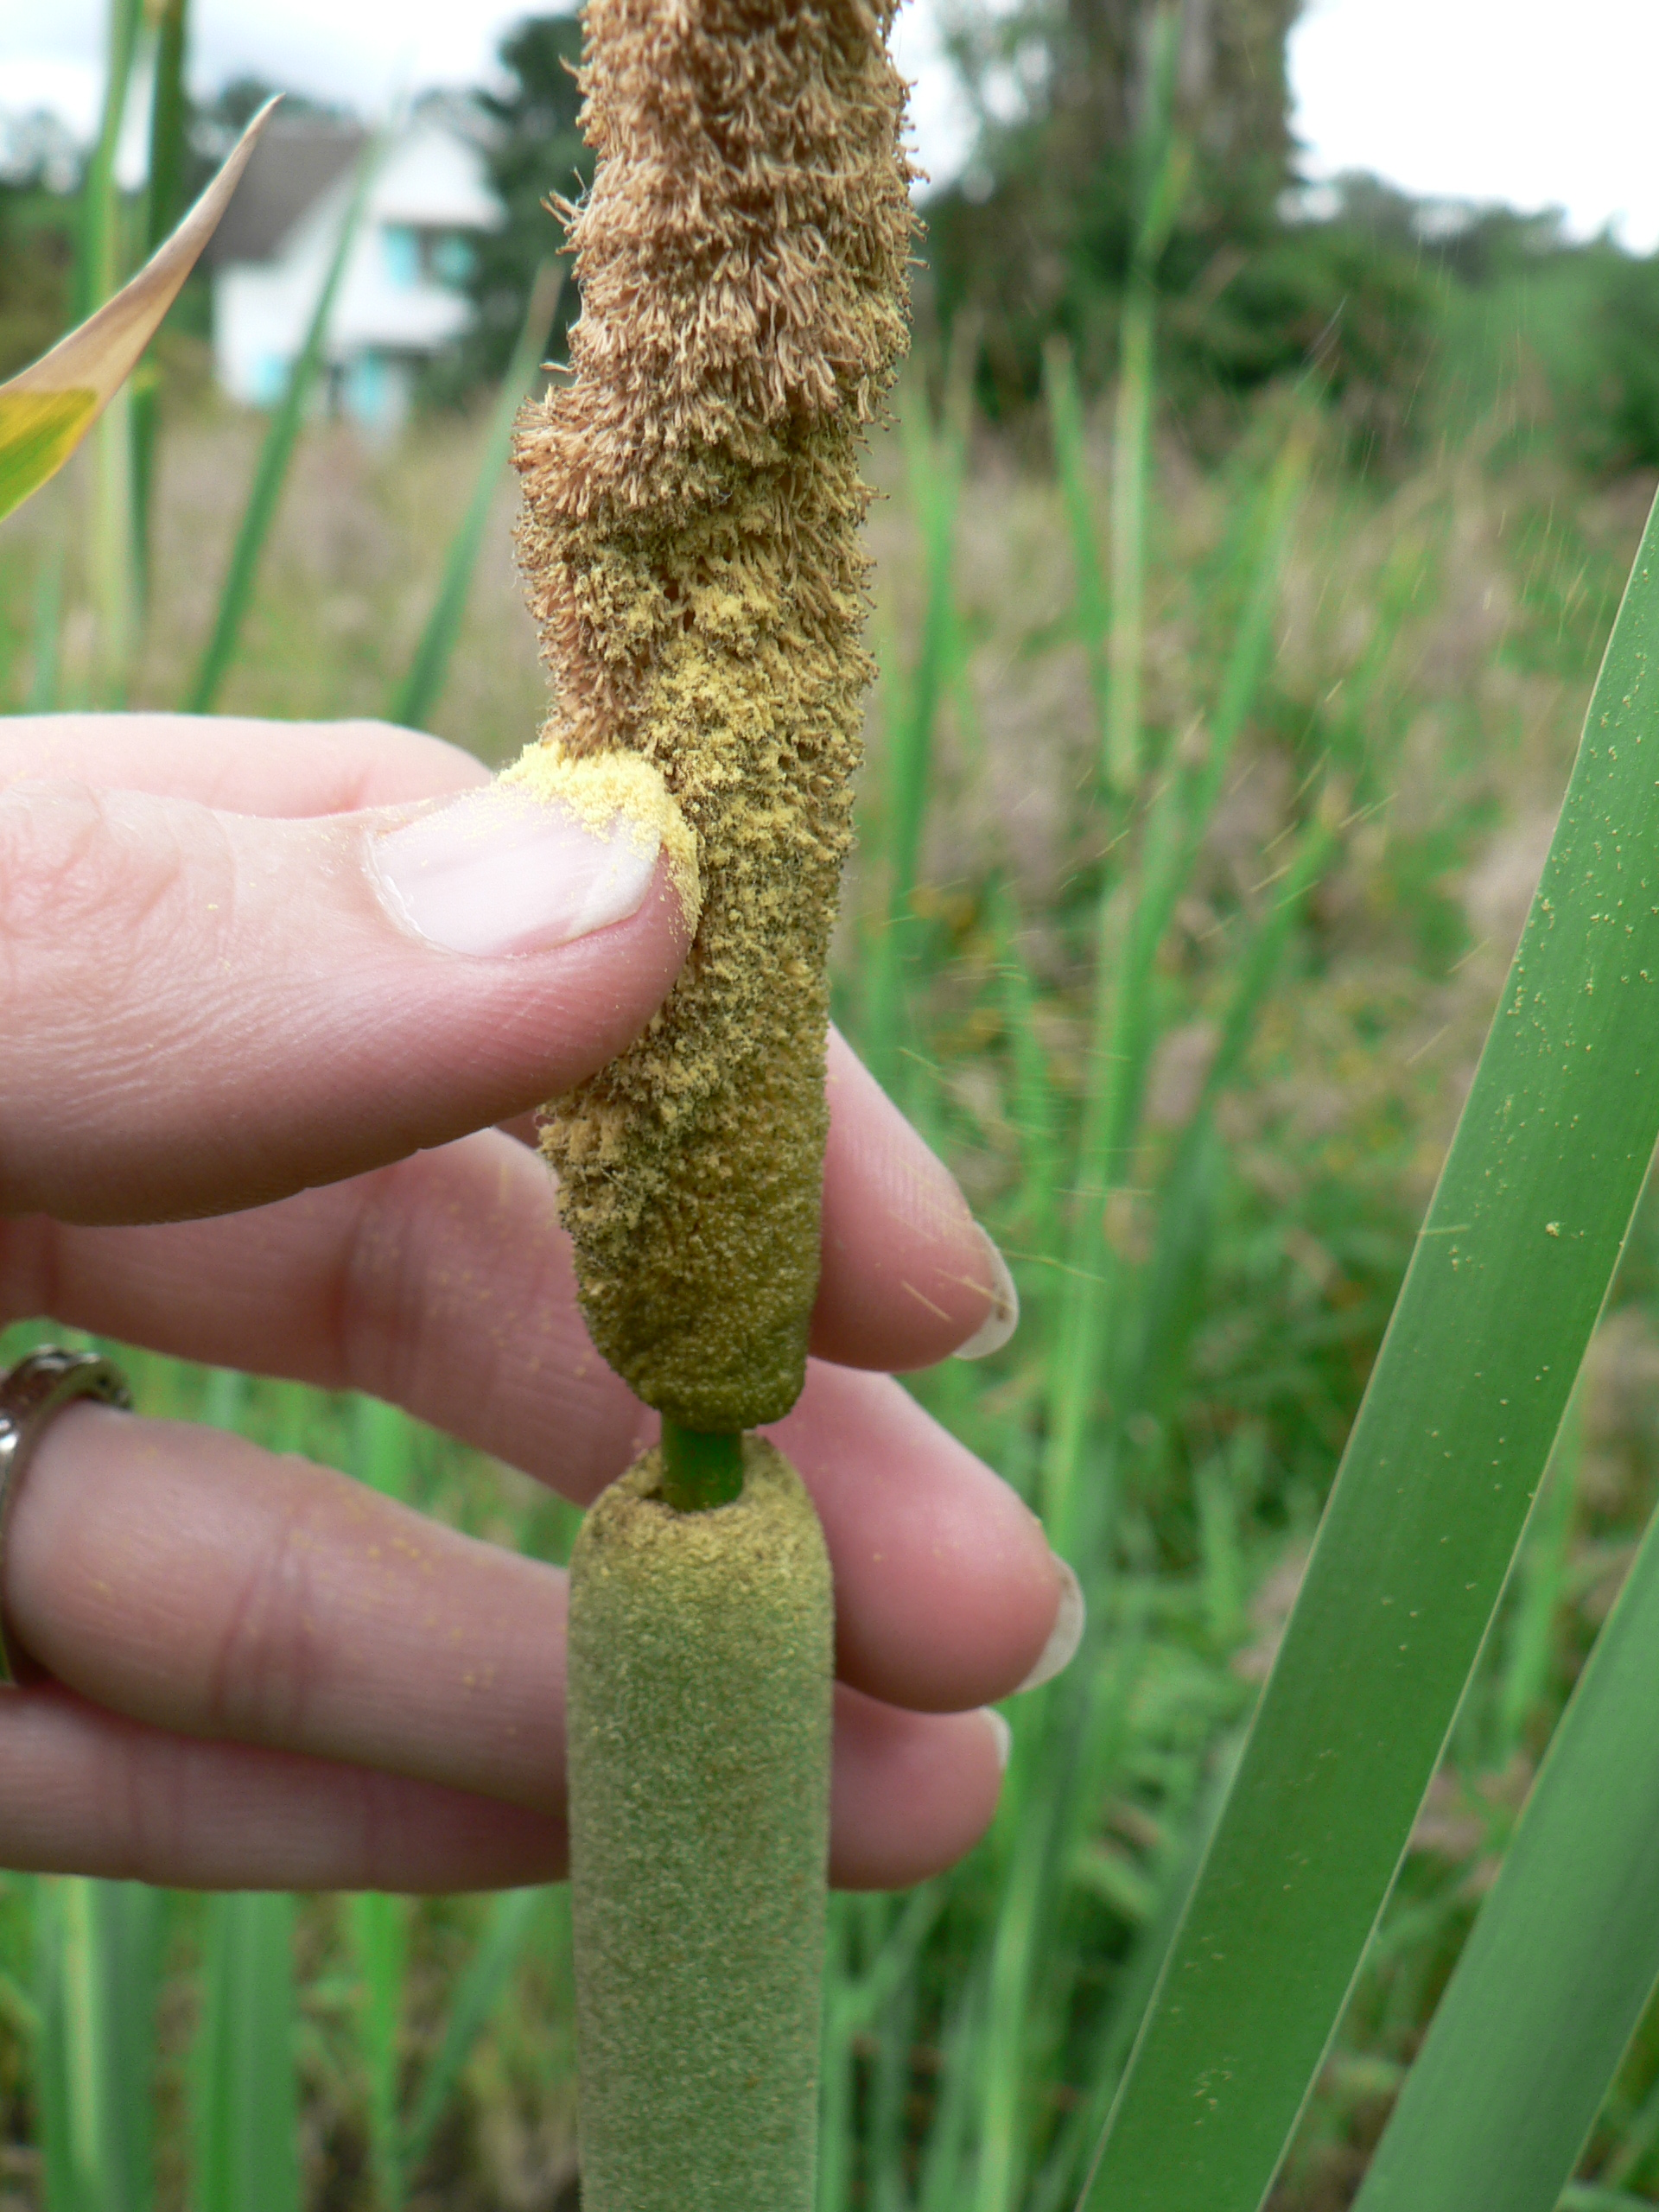 The pollen on top of the seed head from which cattail gets its name. Photo by Kim Chisholm.